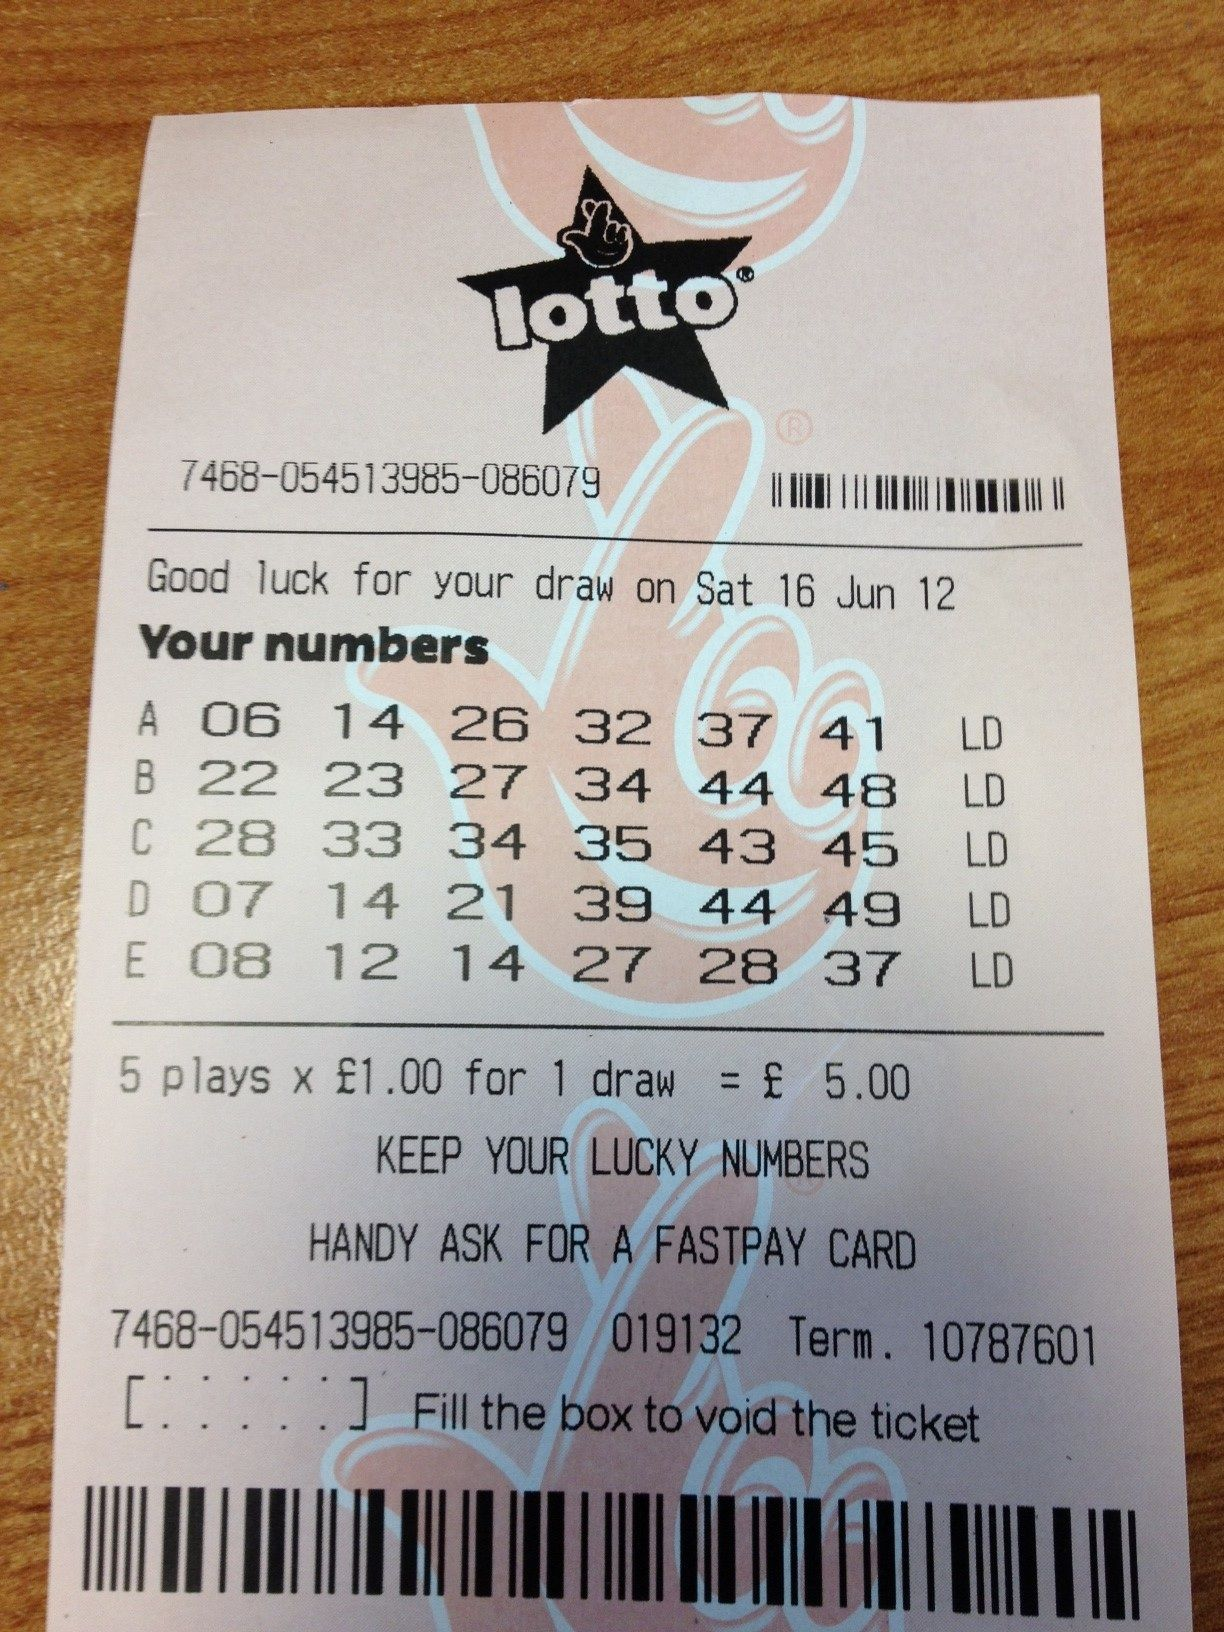 Get Free Lotto #Lottery Ticket For Every 25 Searches at